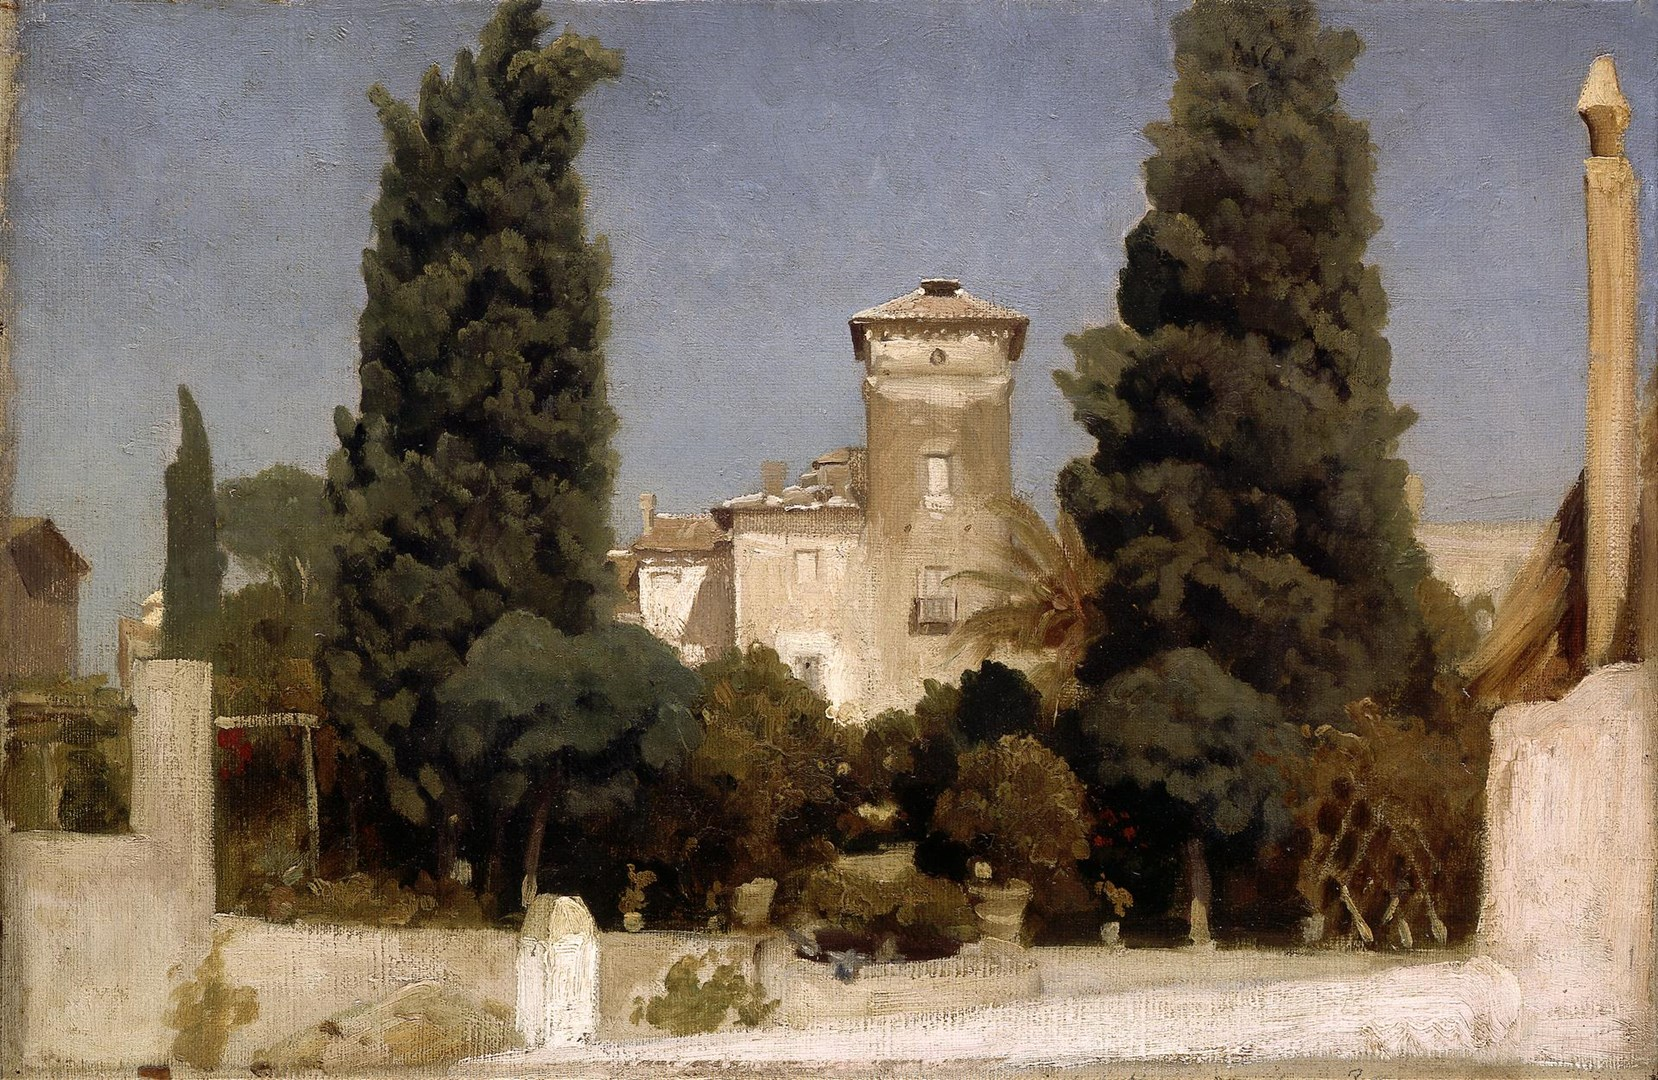 The Villa Malta, Rome by Frederic, Lord Leighton